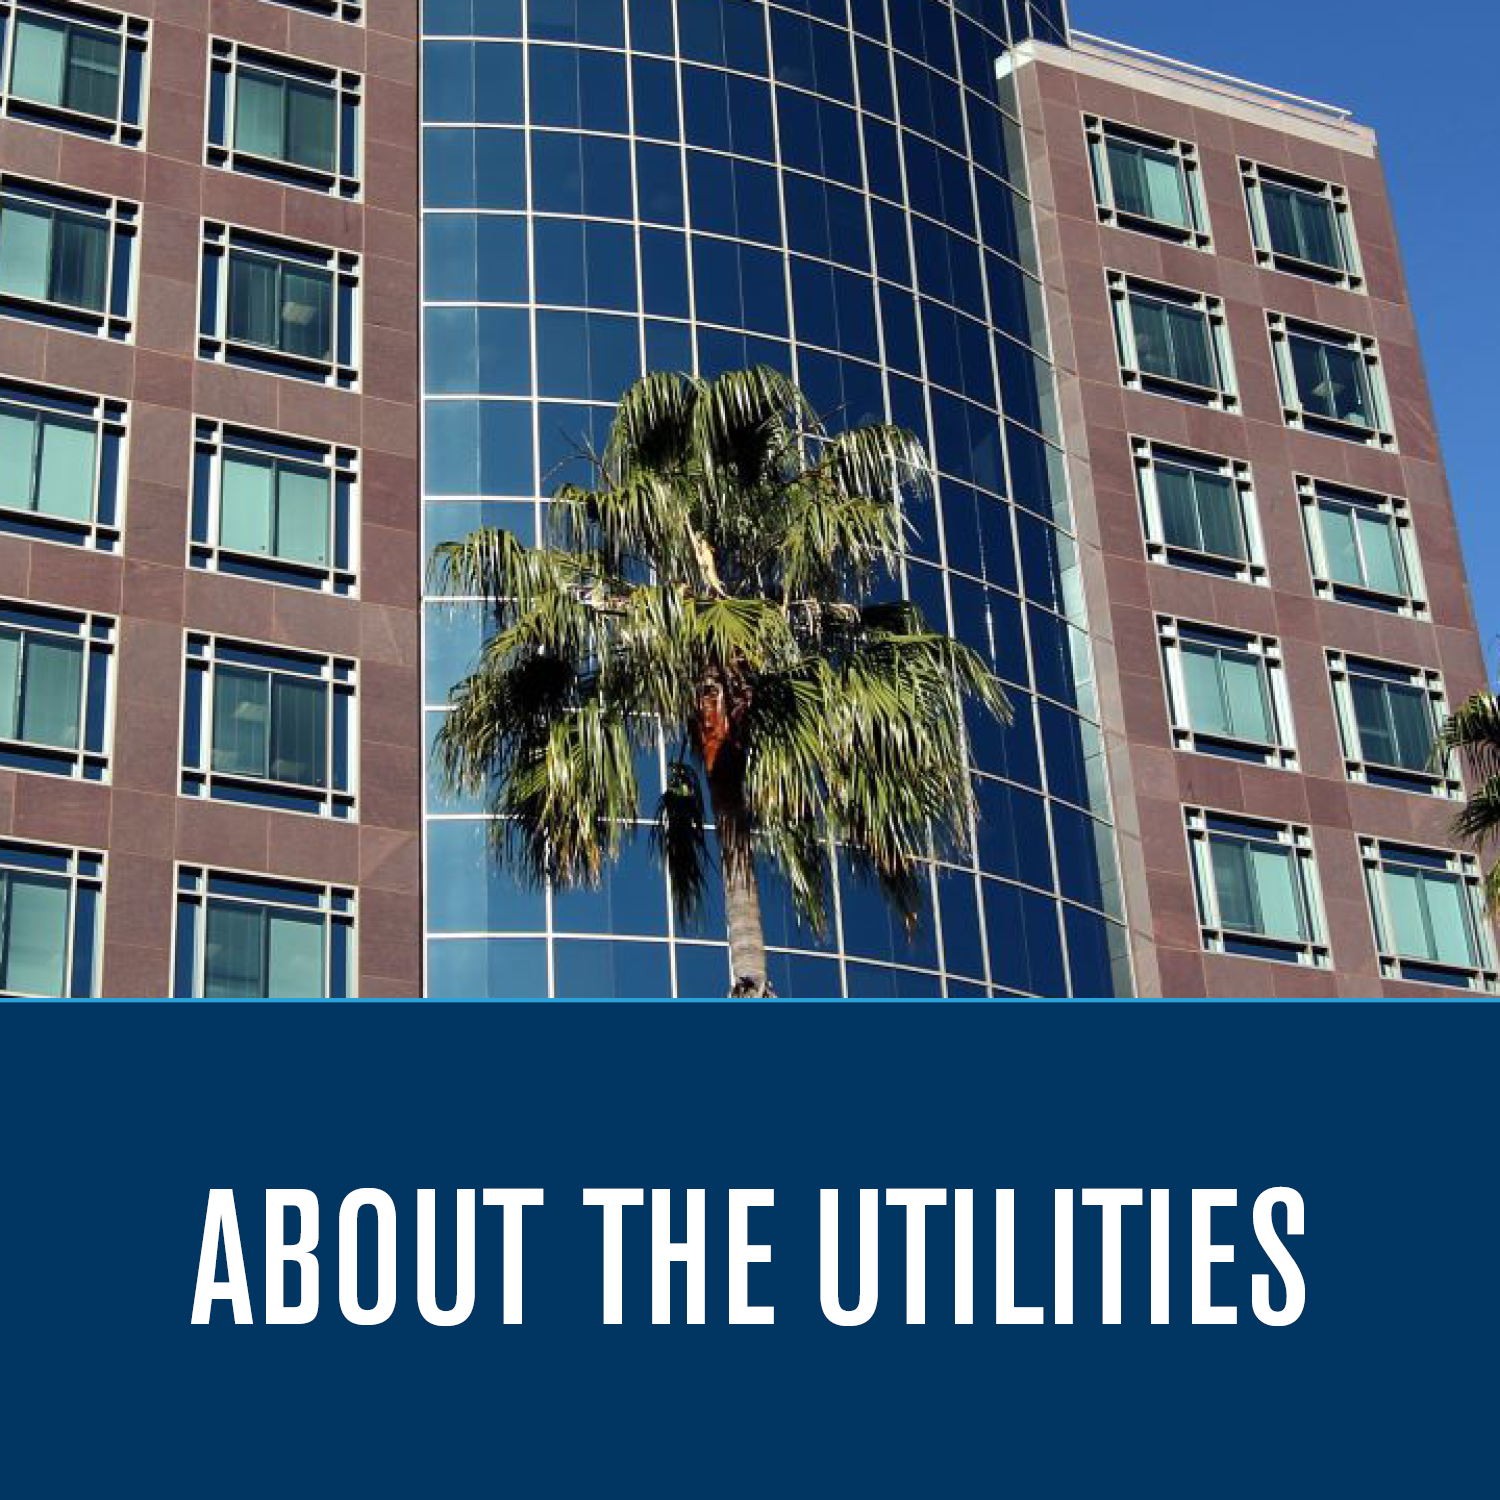 About The Utilities